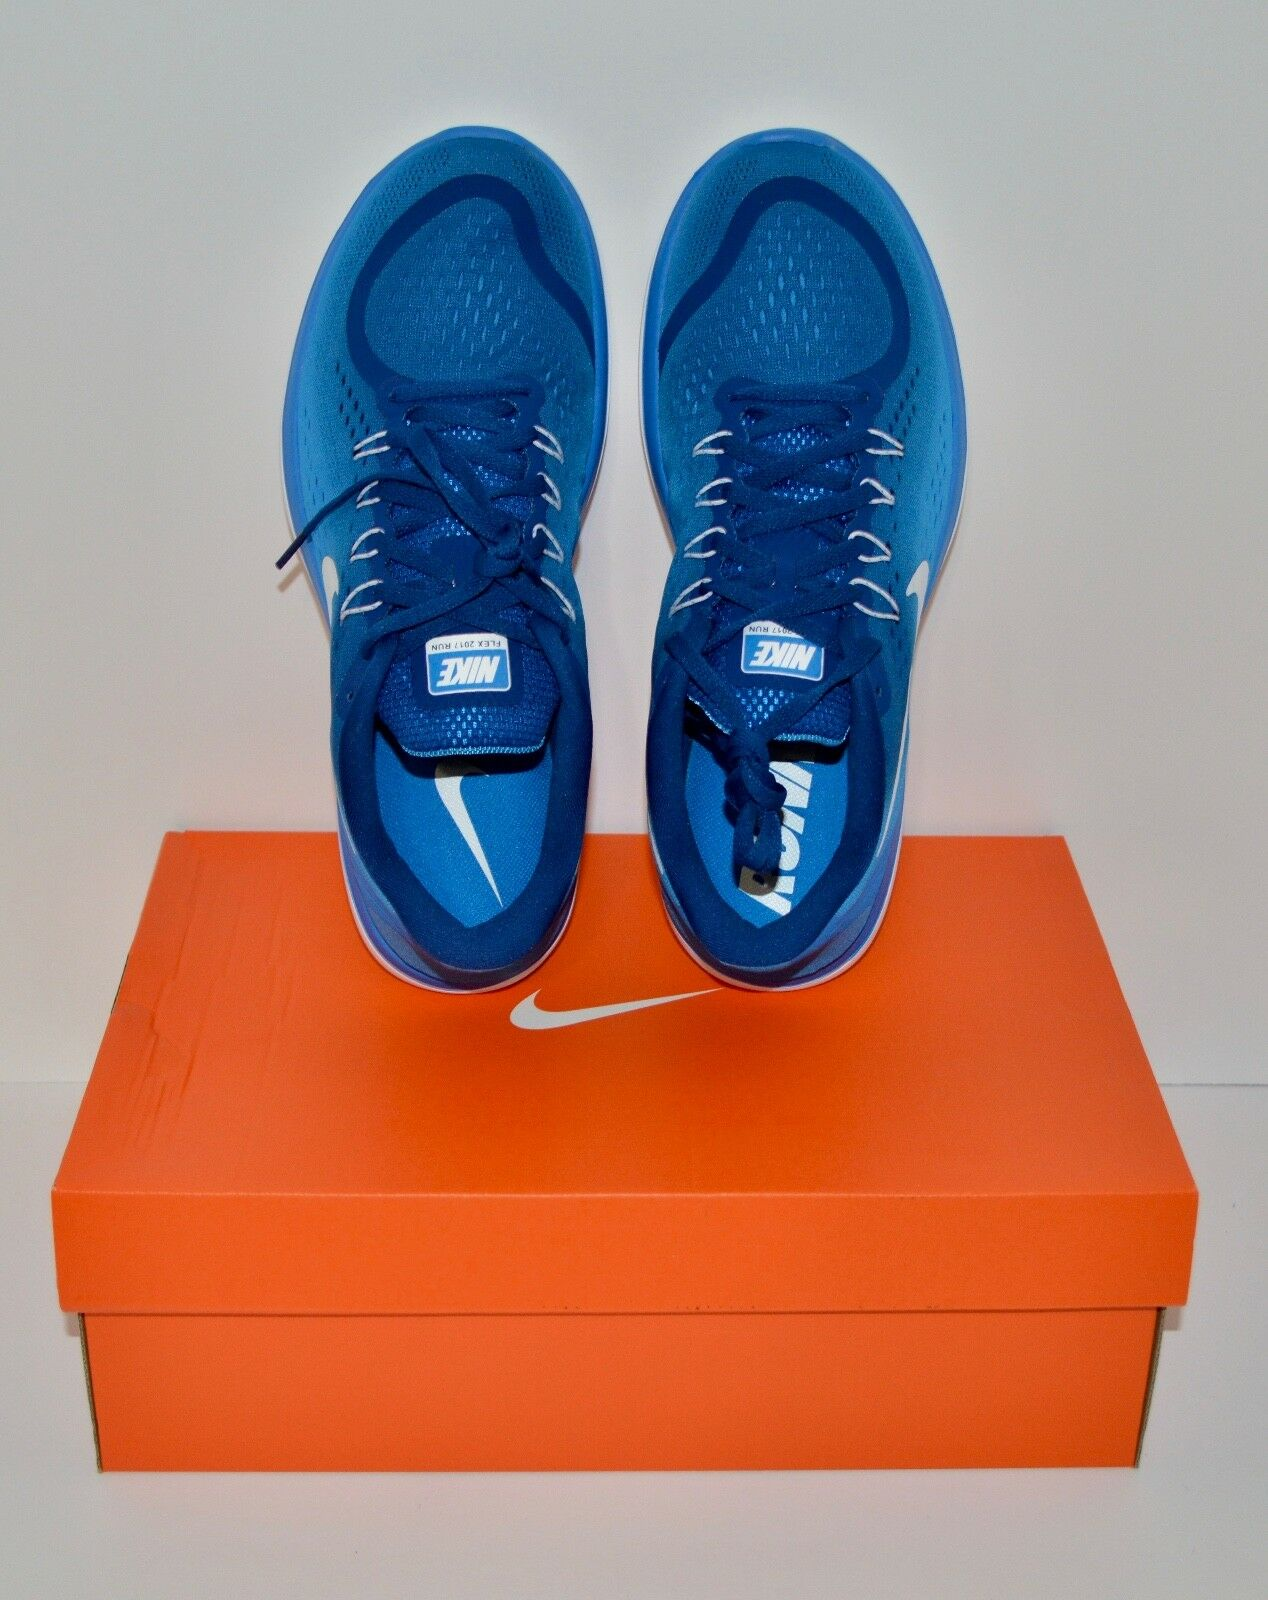 Nike Flex 2018 RN Men's Running Shoes/Gym Blue/White-Photo Blue Size 10.5 New